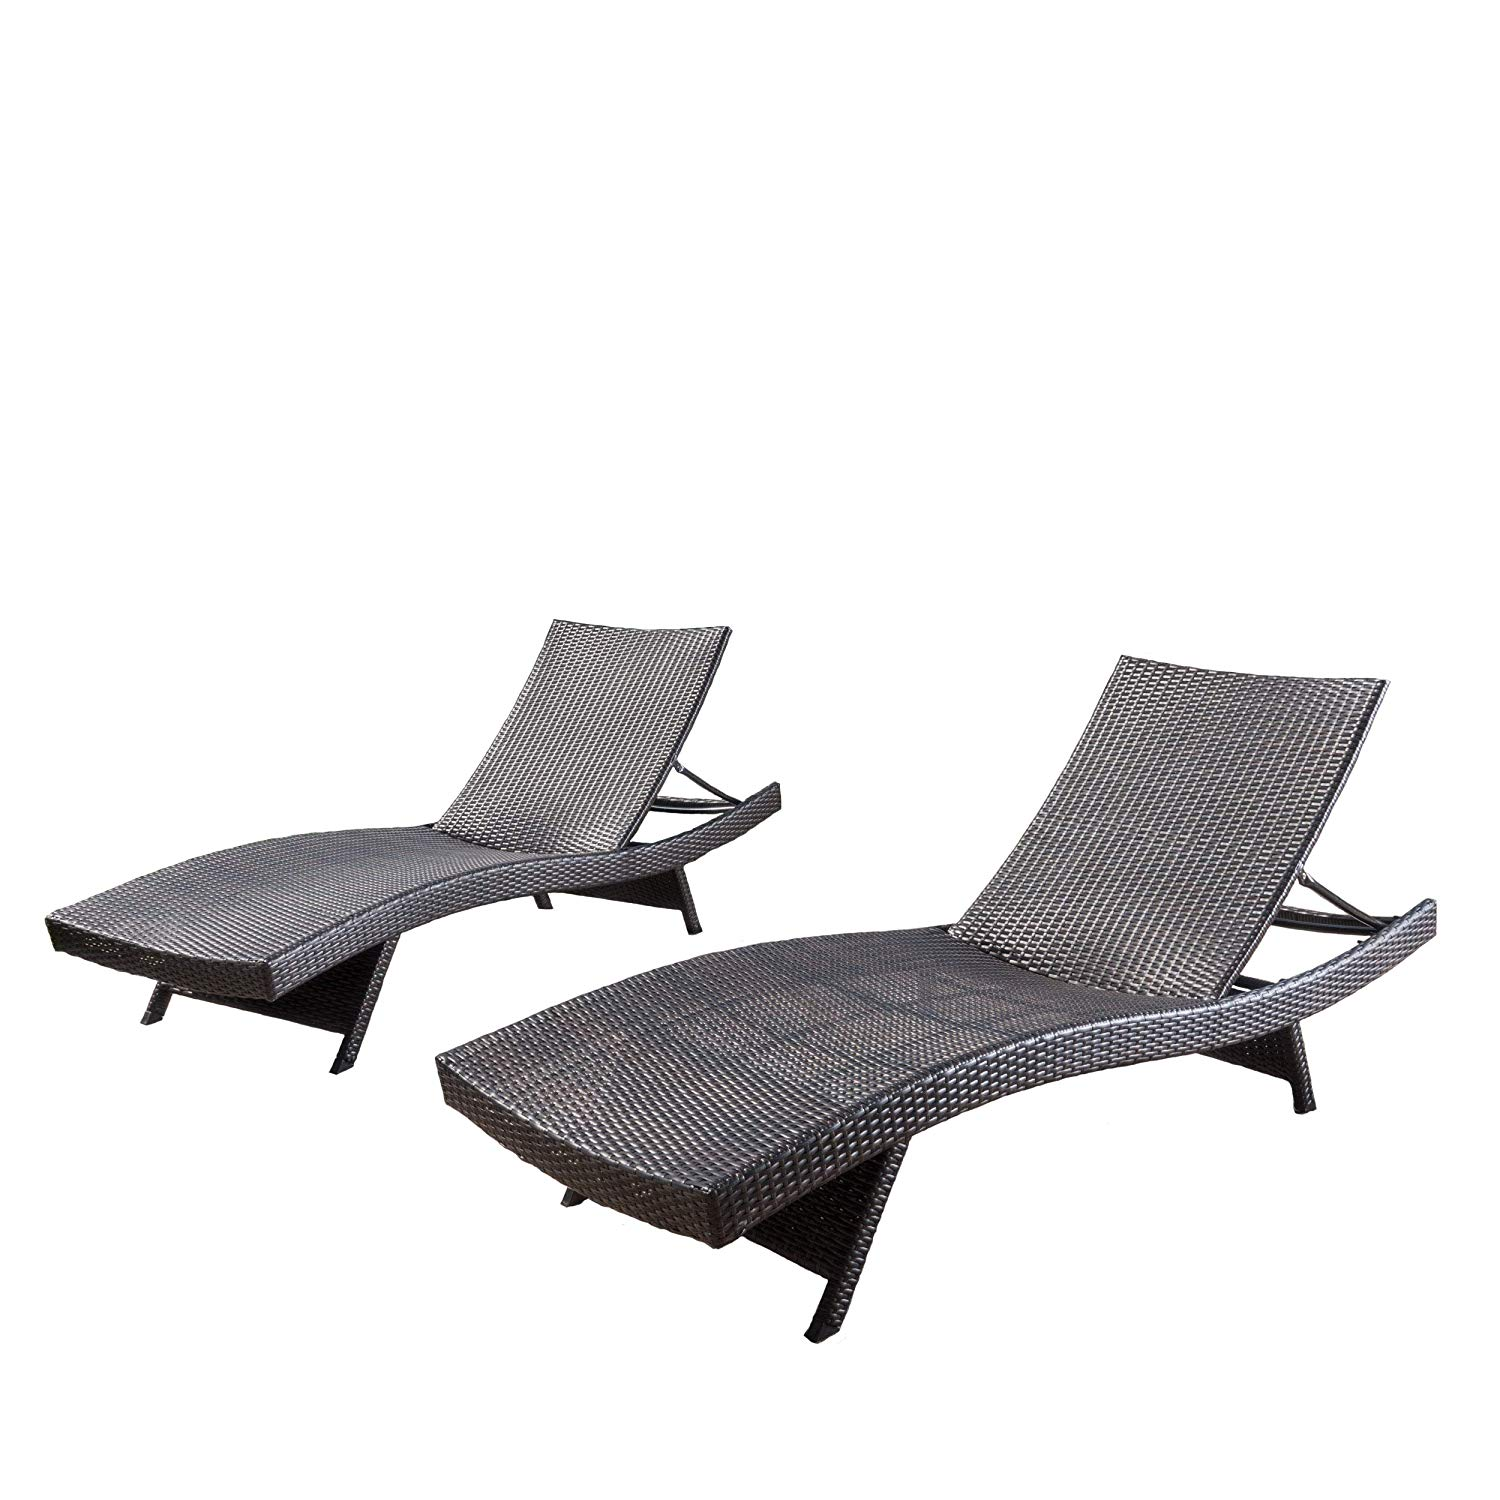 Christopher Knight Home 294919 Lakeport Outdoor Adjustable Chaise Lounge Chair